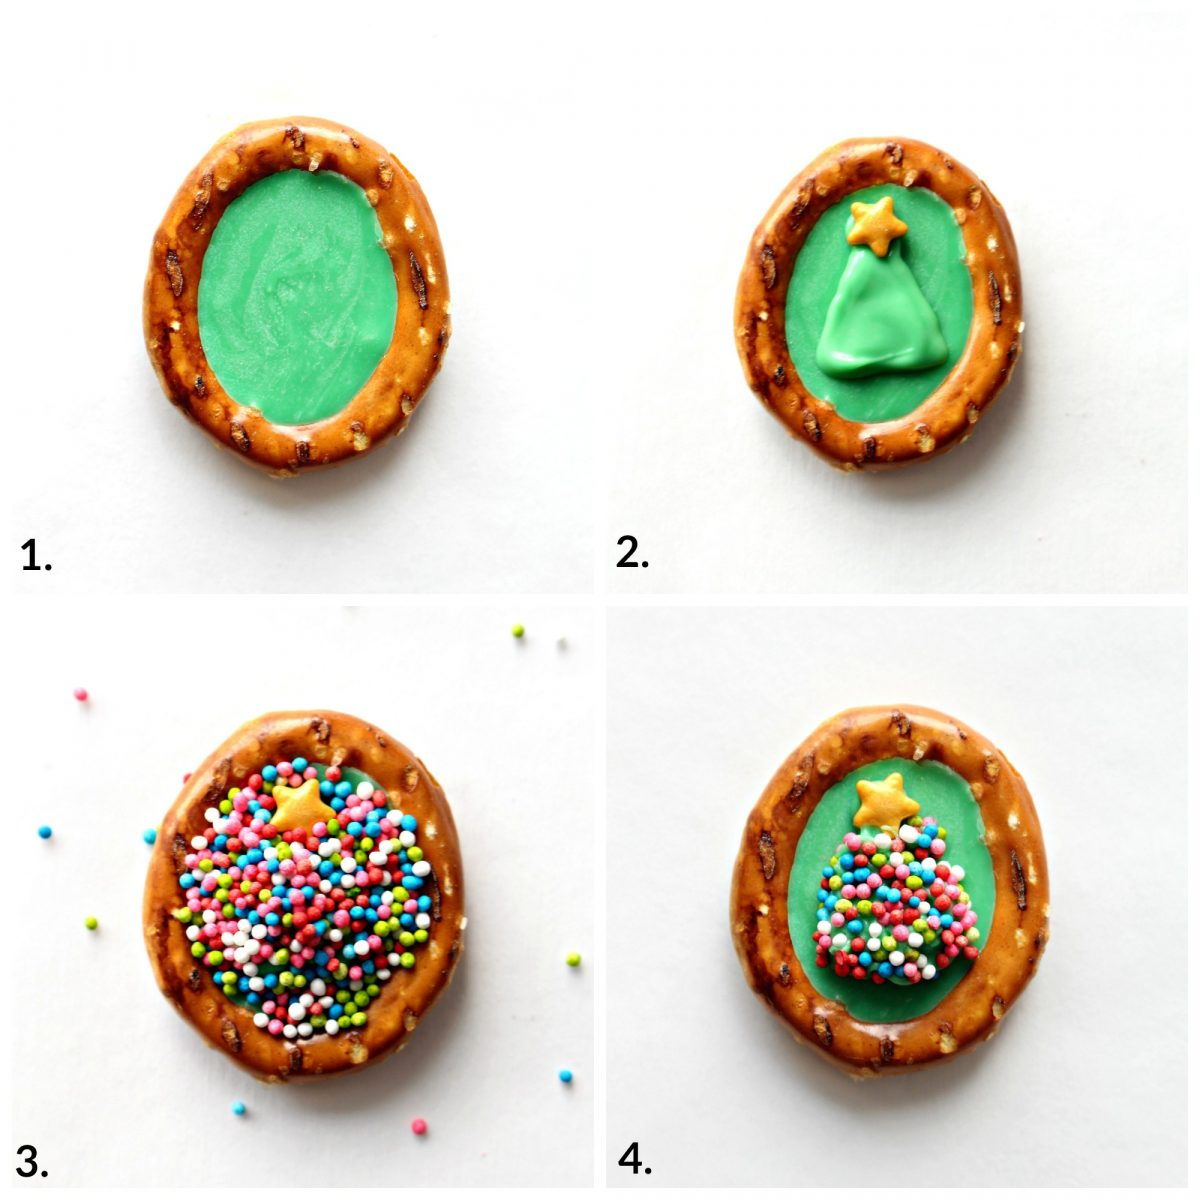 Decorating pretzels; fill with green chocolate, pipe green triangle with star sprinkle, add nonpareils, remove excess.